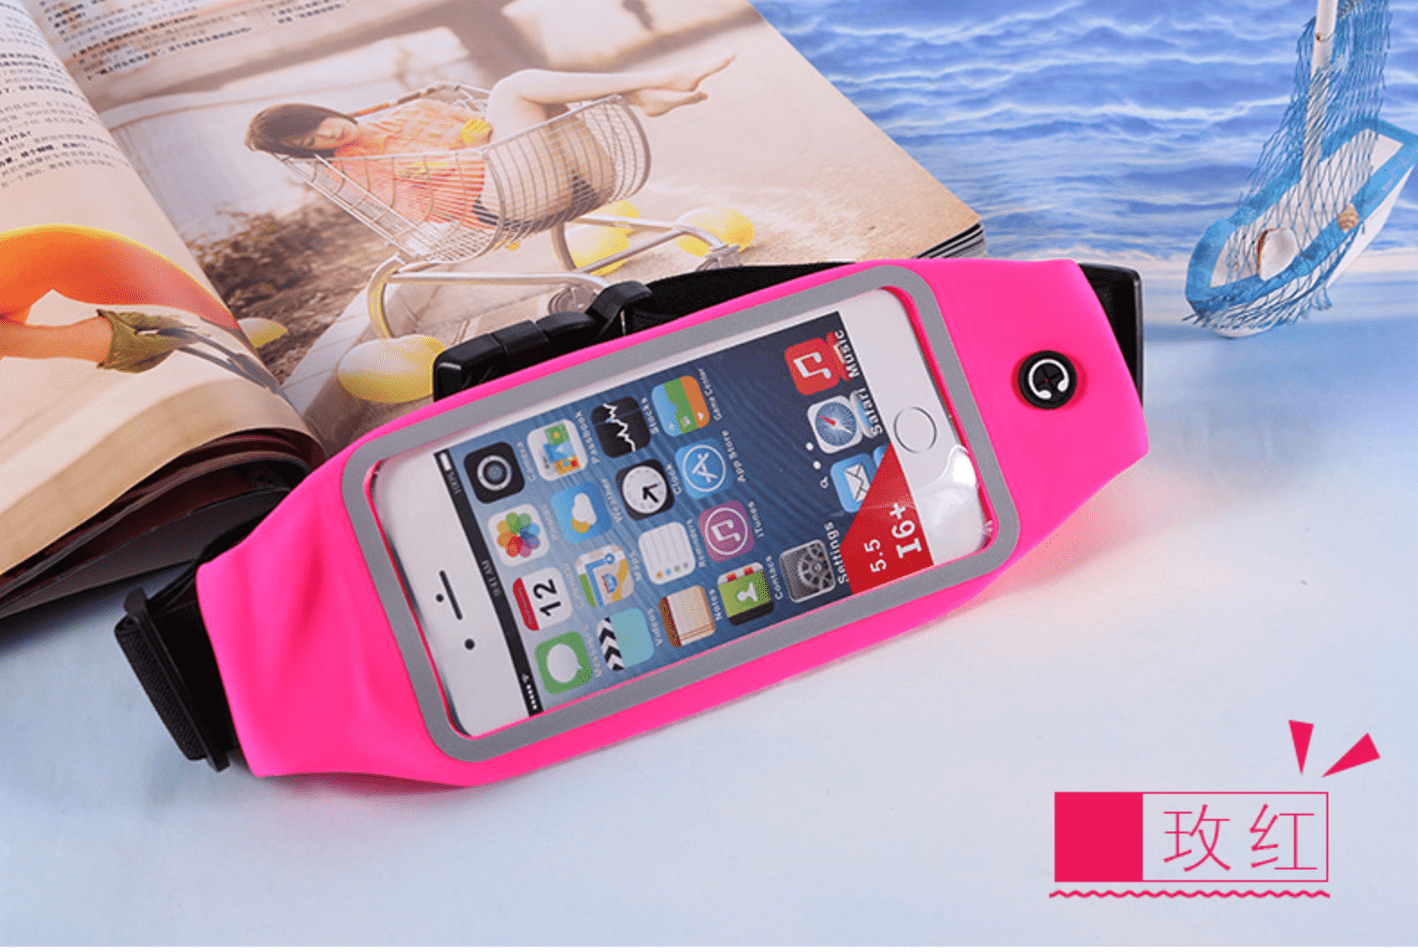 Waterproof reflective waist sport belt for iPhone, CA034 - We Love Apple